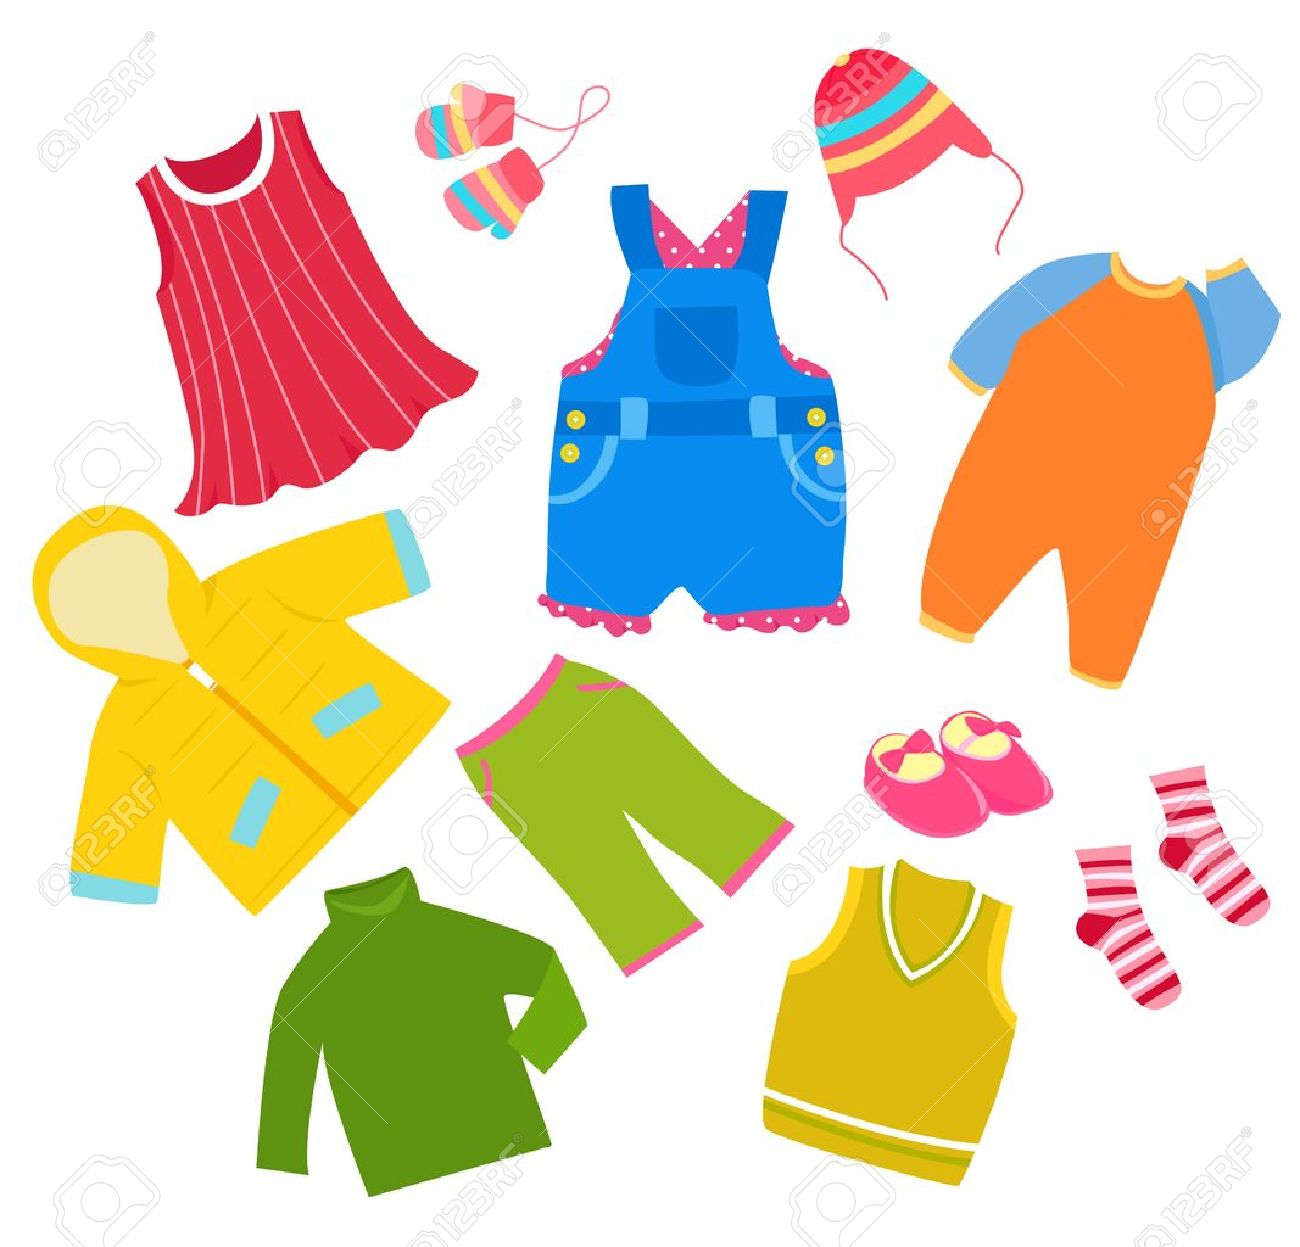 Kids Clothes Clipart 7 Clipart Station